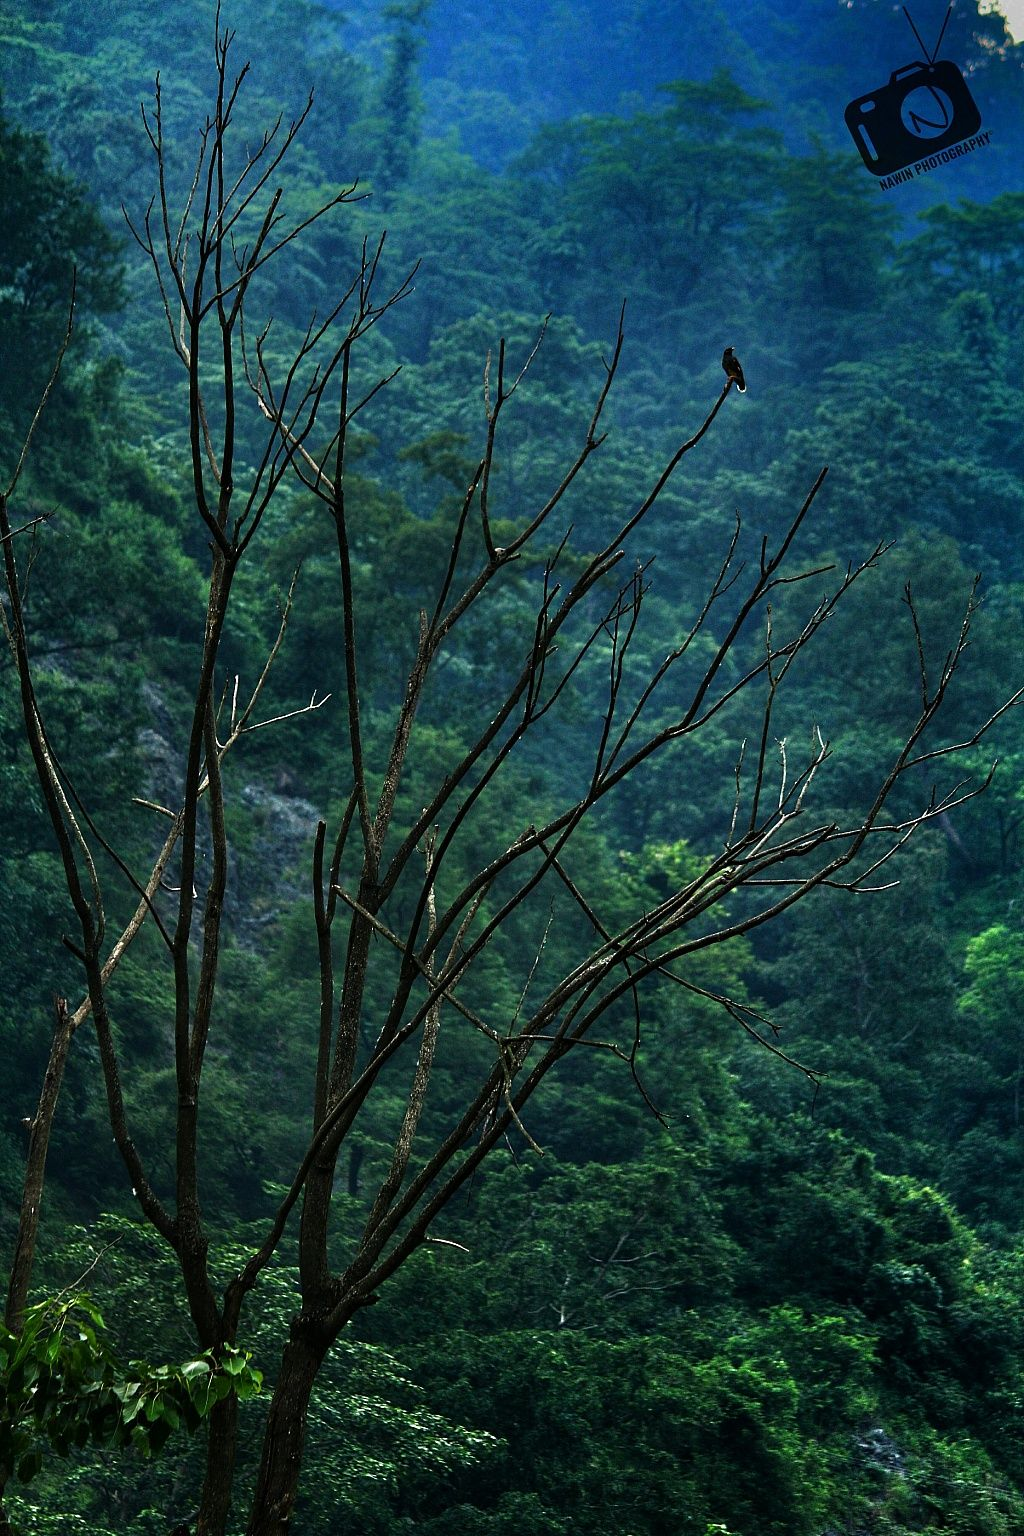 Silence Forest Tree Photography Naturephotography Naturelover Nature Photography Photography Amazing Photography